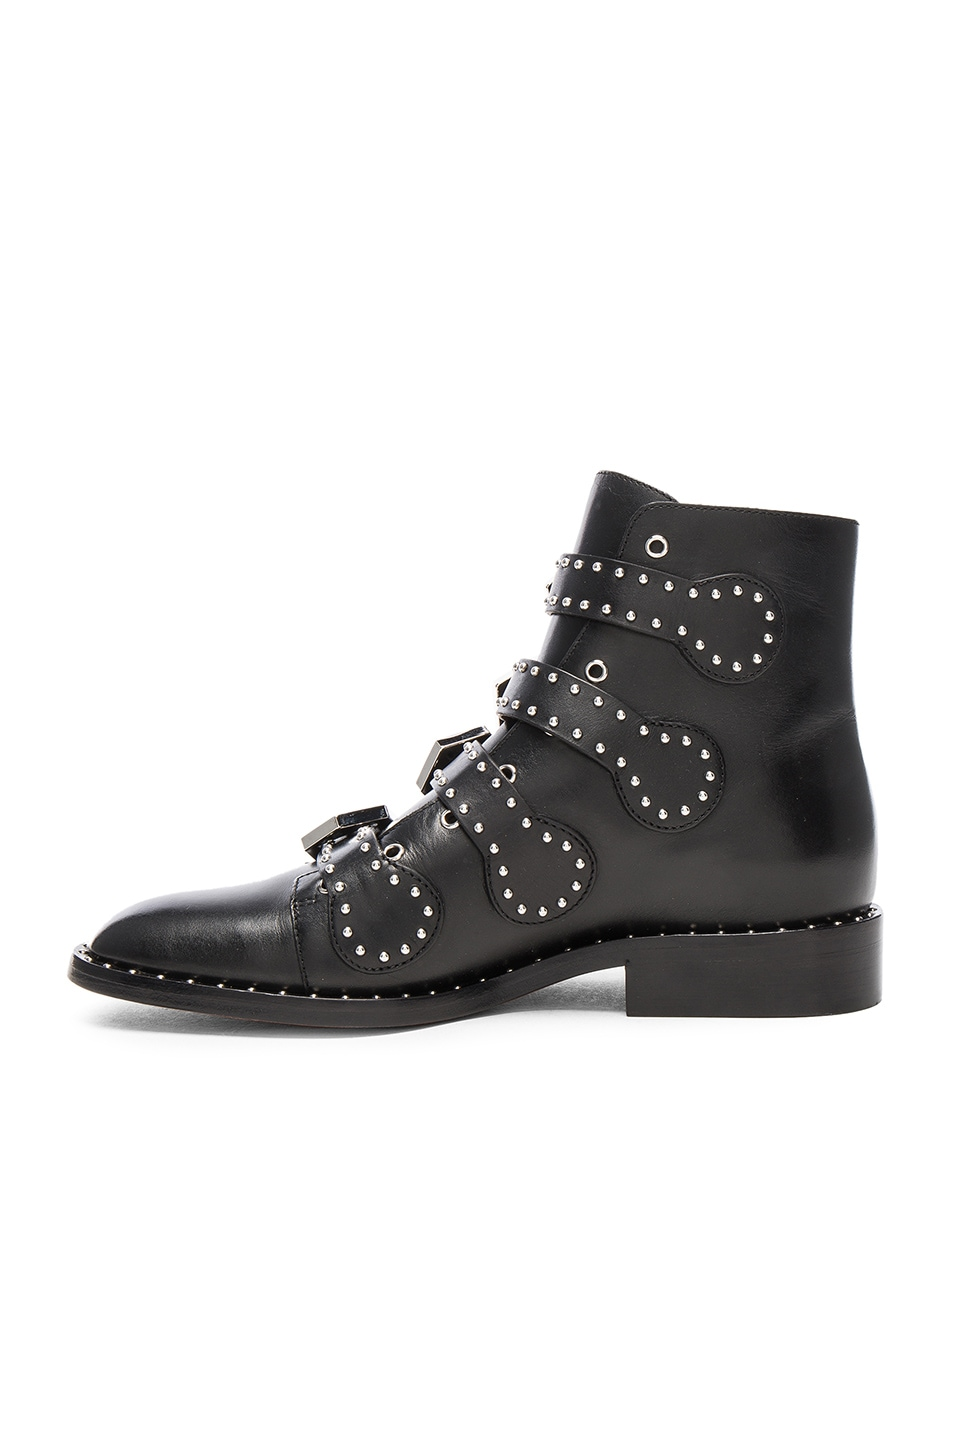 4337ff0e7eb15 Image 5 of Givenchy Elegant Studded Leather Ankle Boots in Black